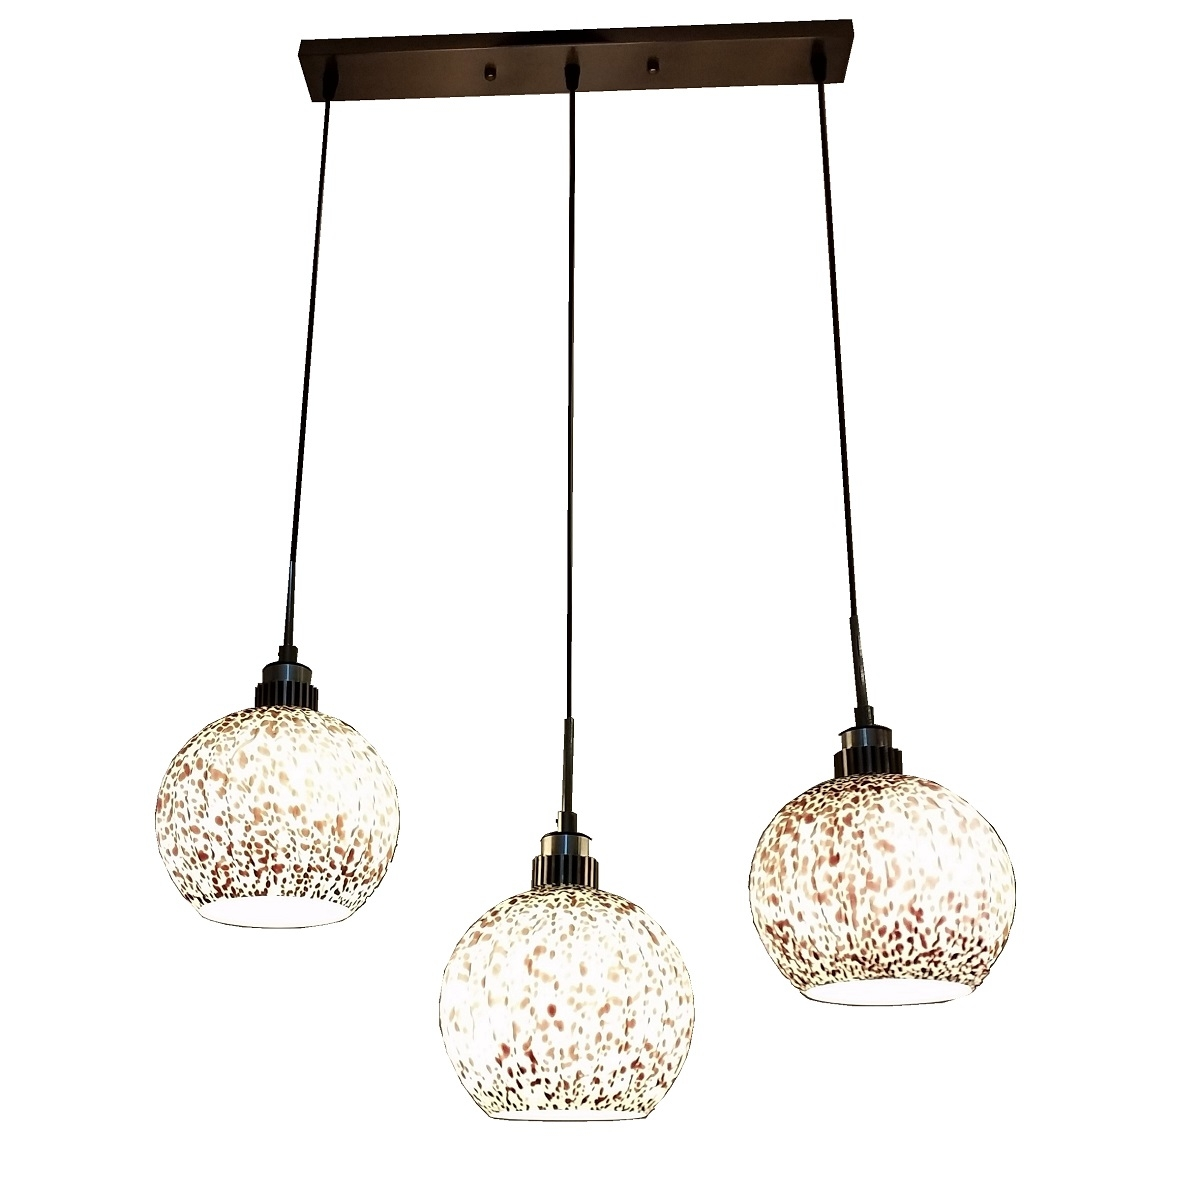 PL2036 3 Hanging Pendant Lamp L Brilliant Source Lighting